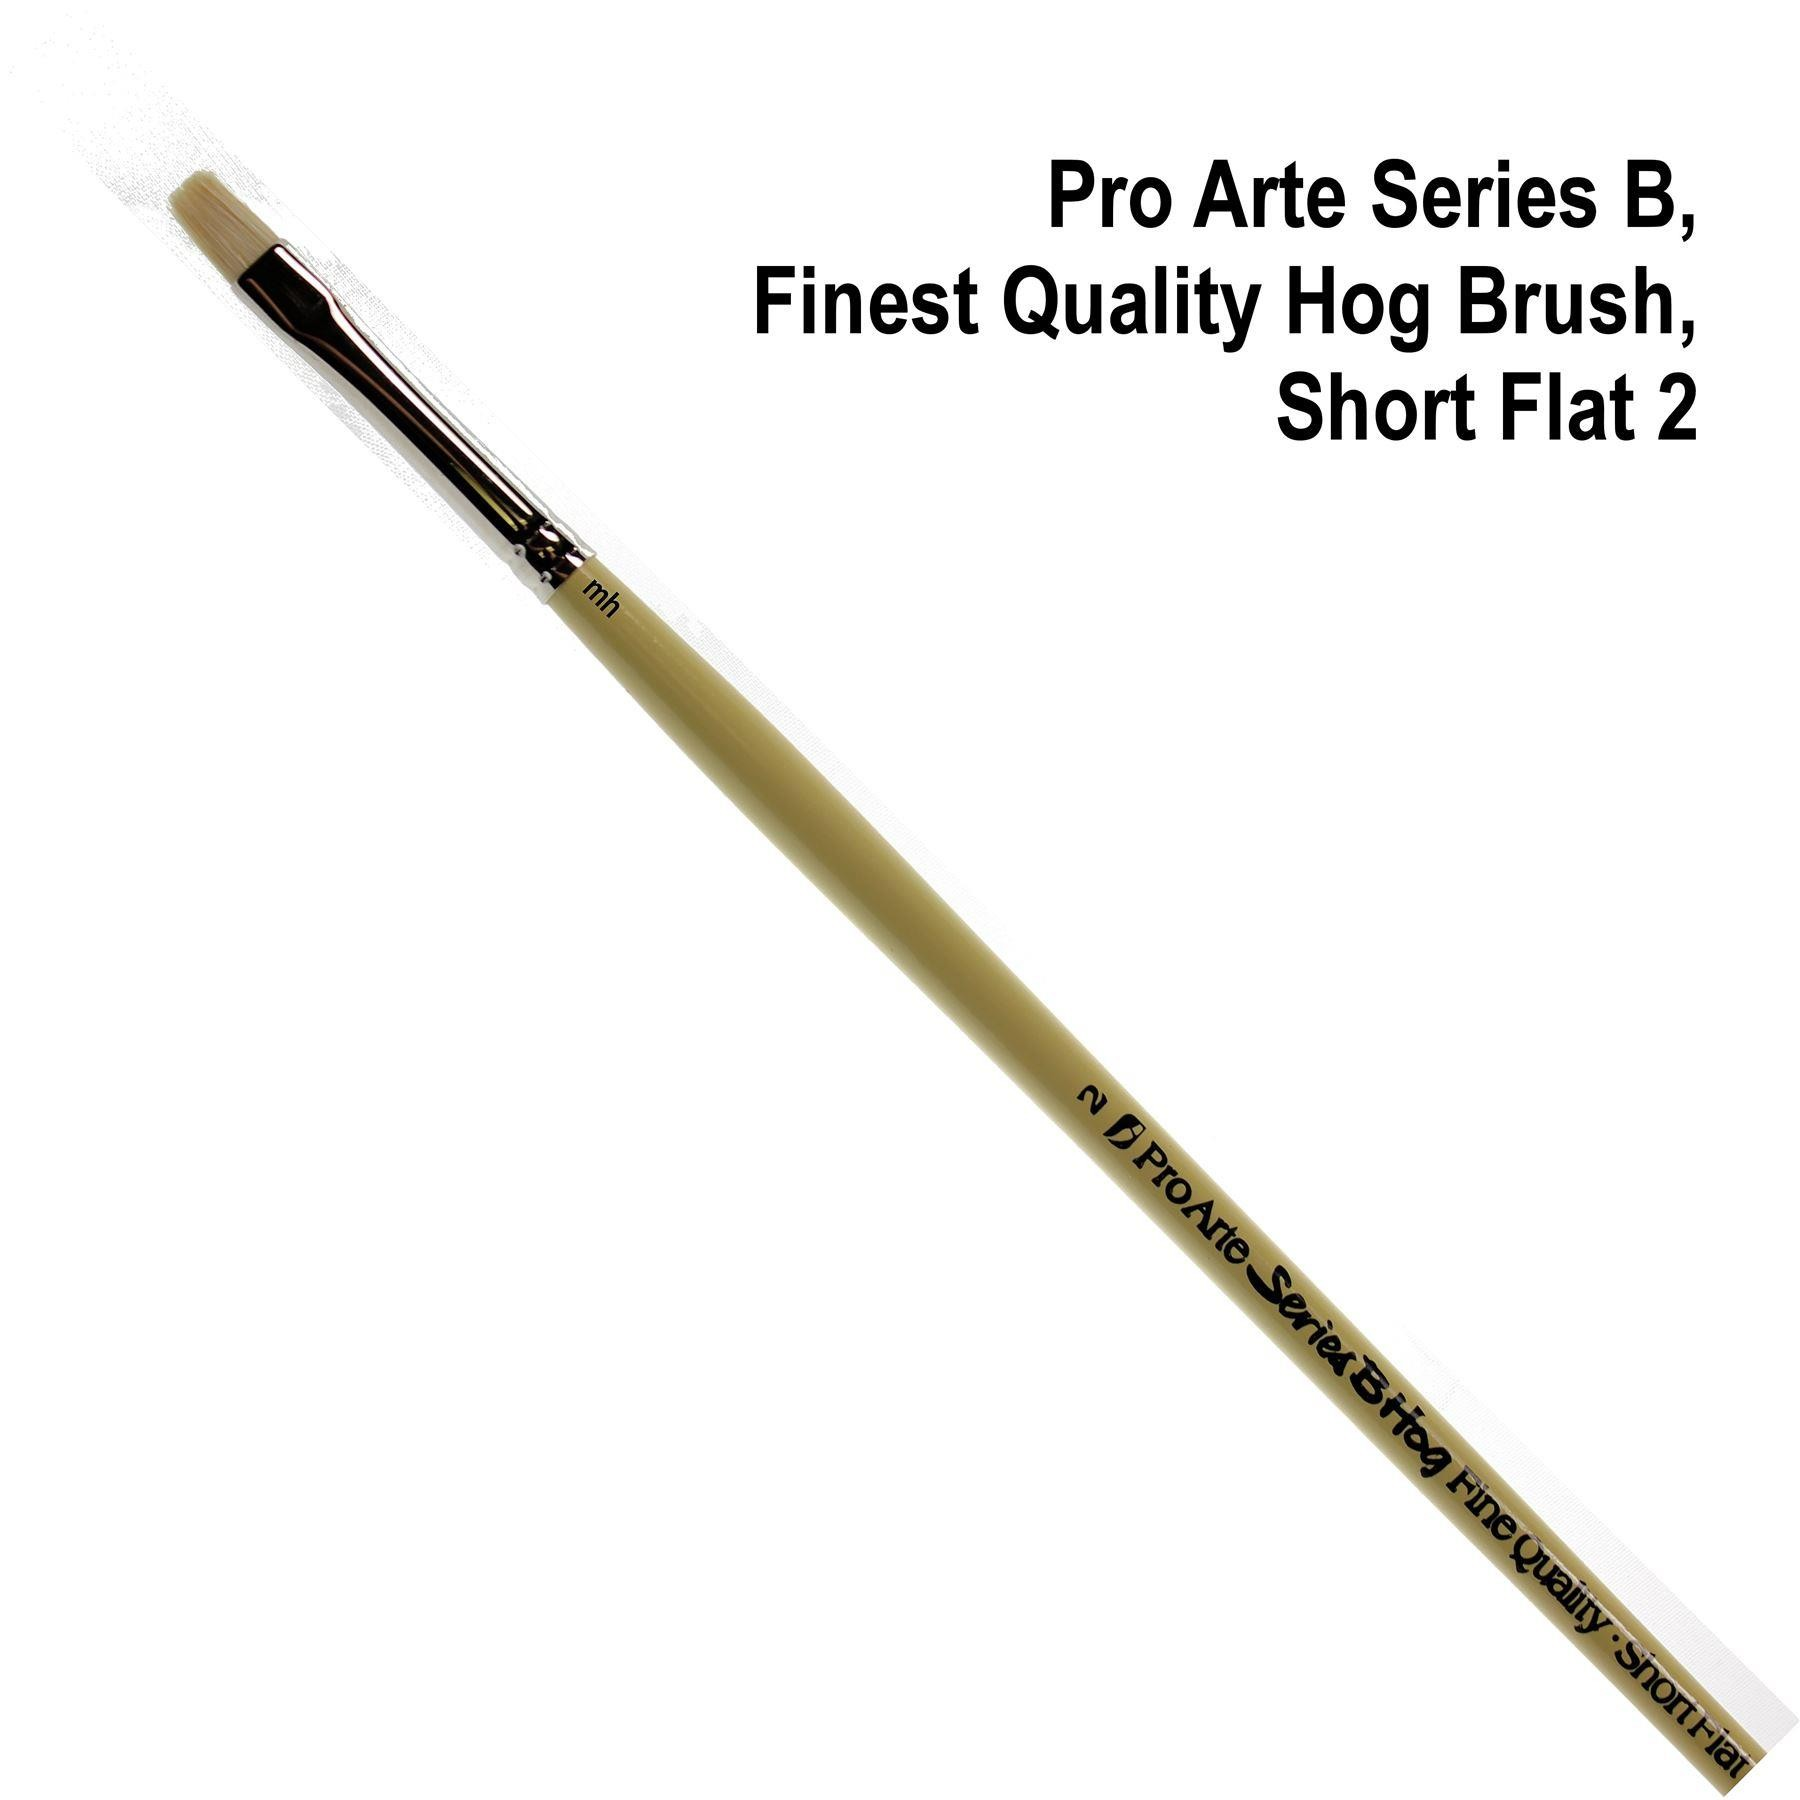 Pro Arte Series B fine quality hogs hair short flat brush